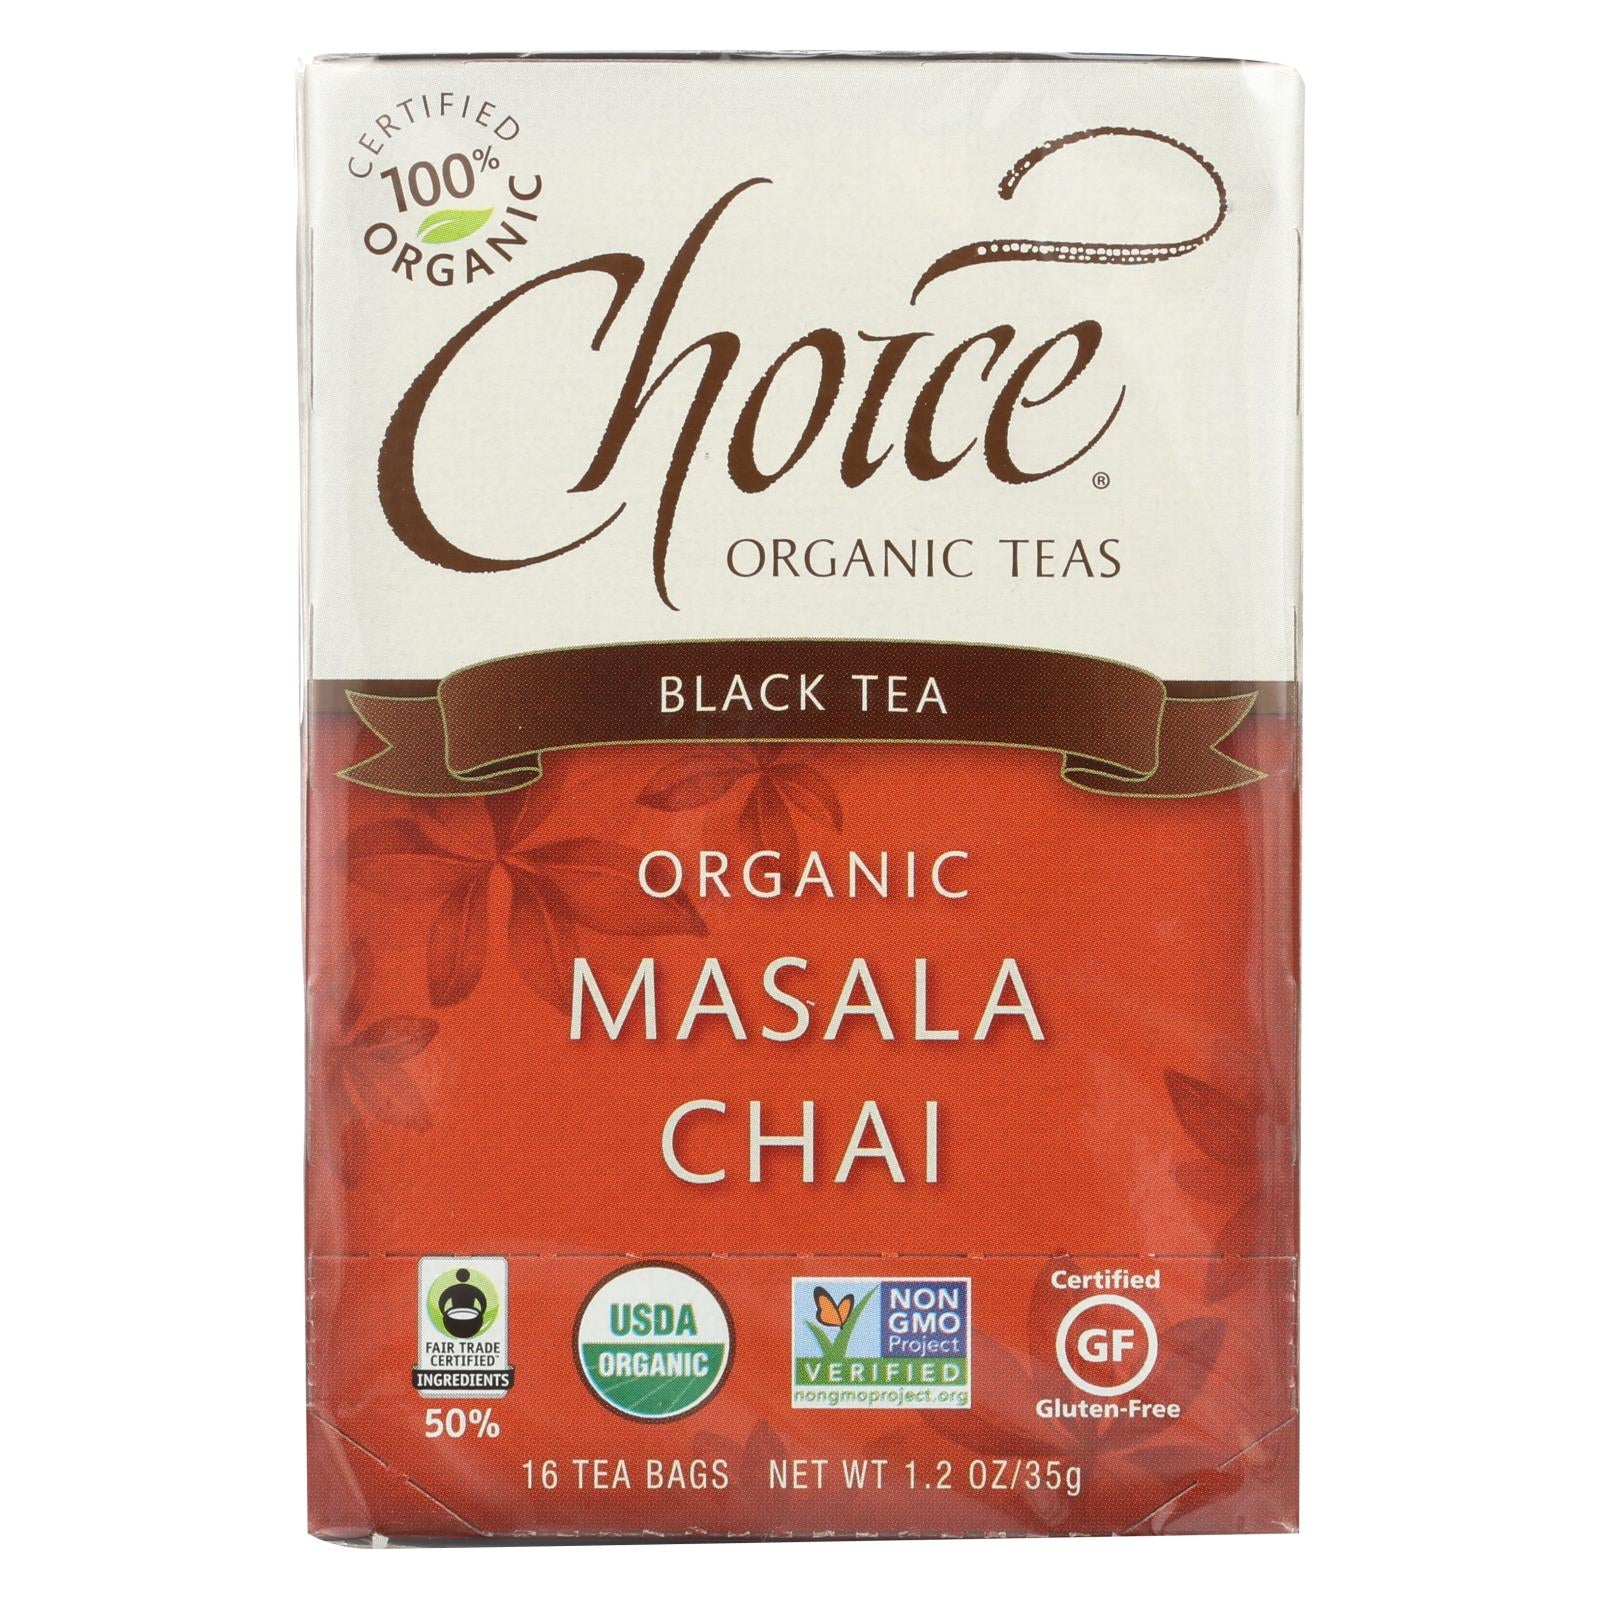 Buy Choice Organic Teas Black Tea Masala Chai - Case of 6 - 16 Bags - Black Tea from Veroeco.com